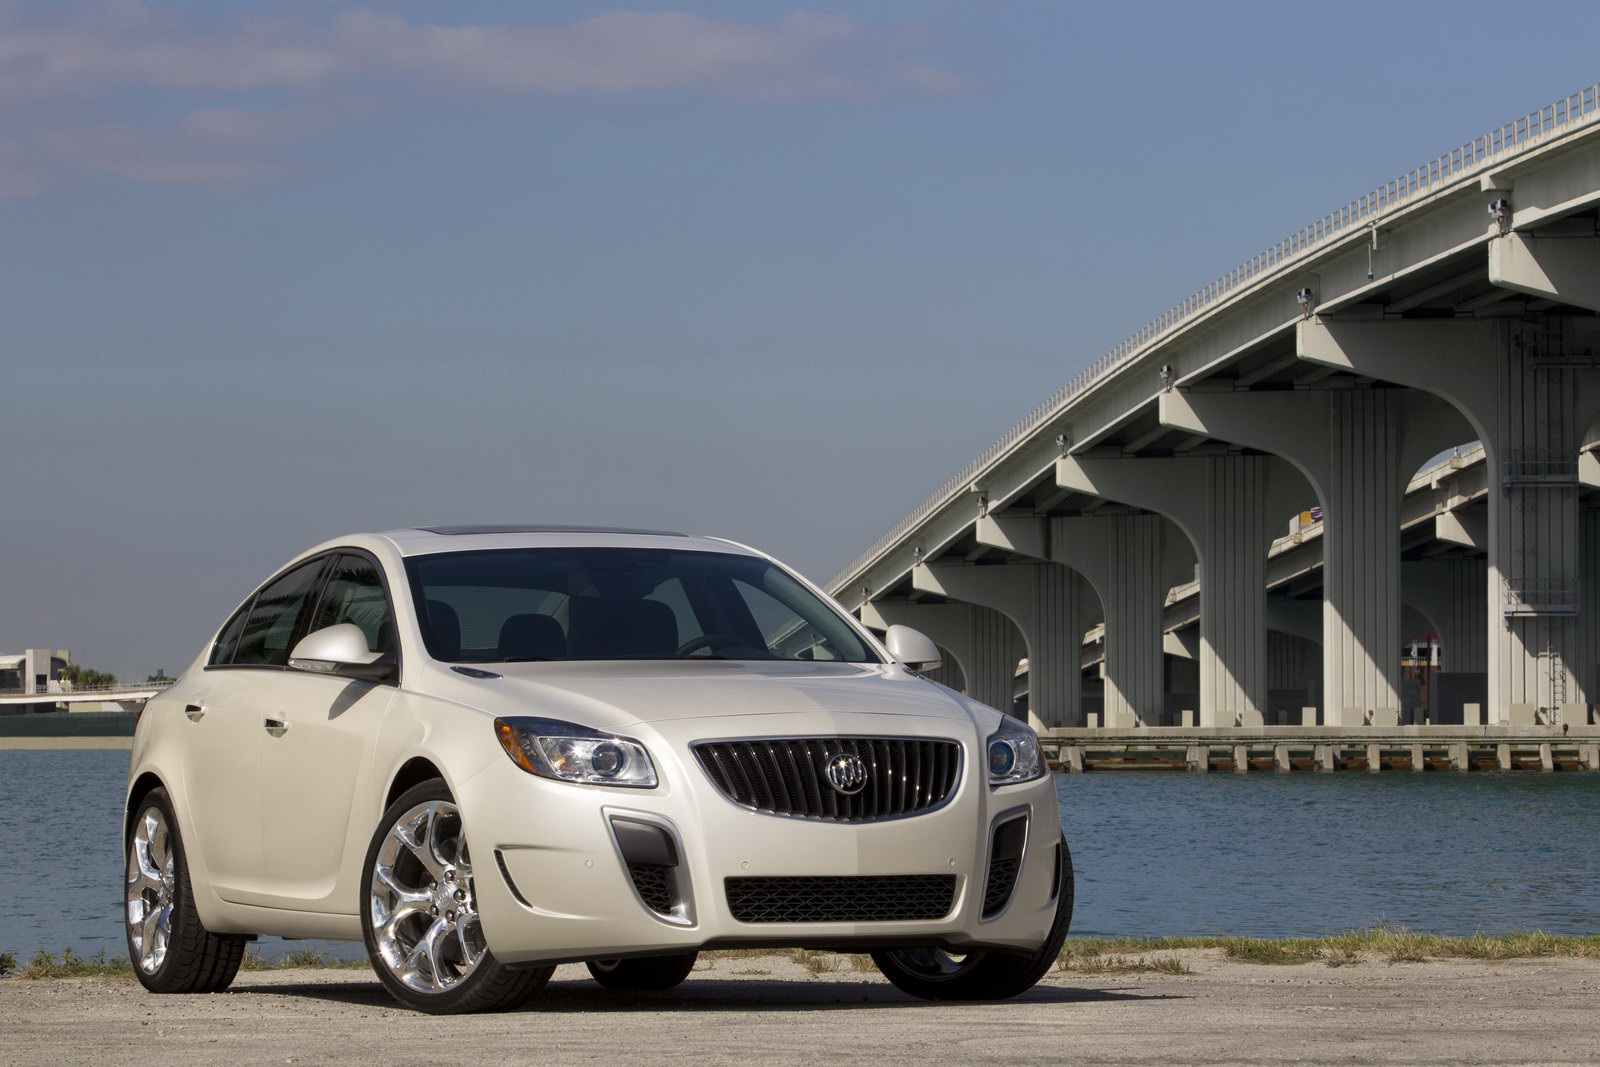 2012 Buick Regal GS 6 2012 Buick Regal GS Generates 270HP